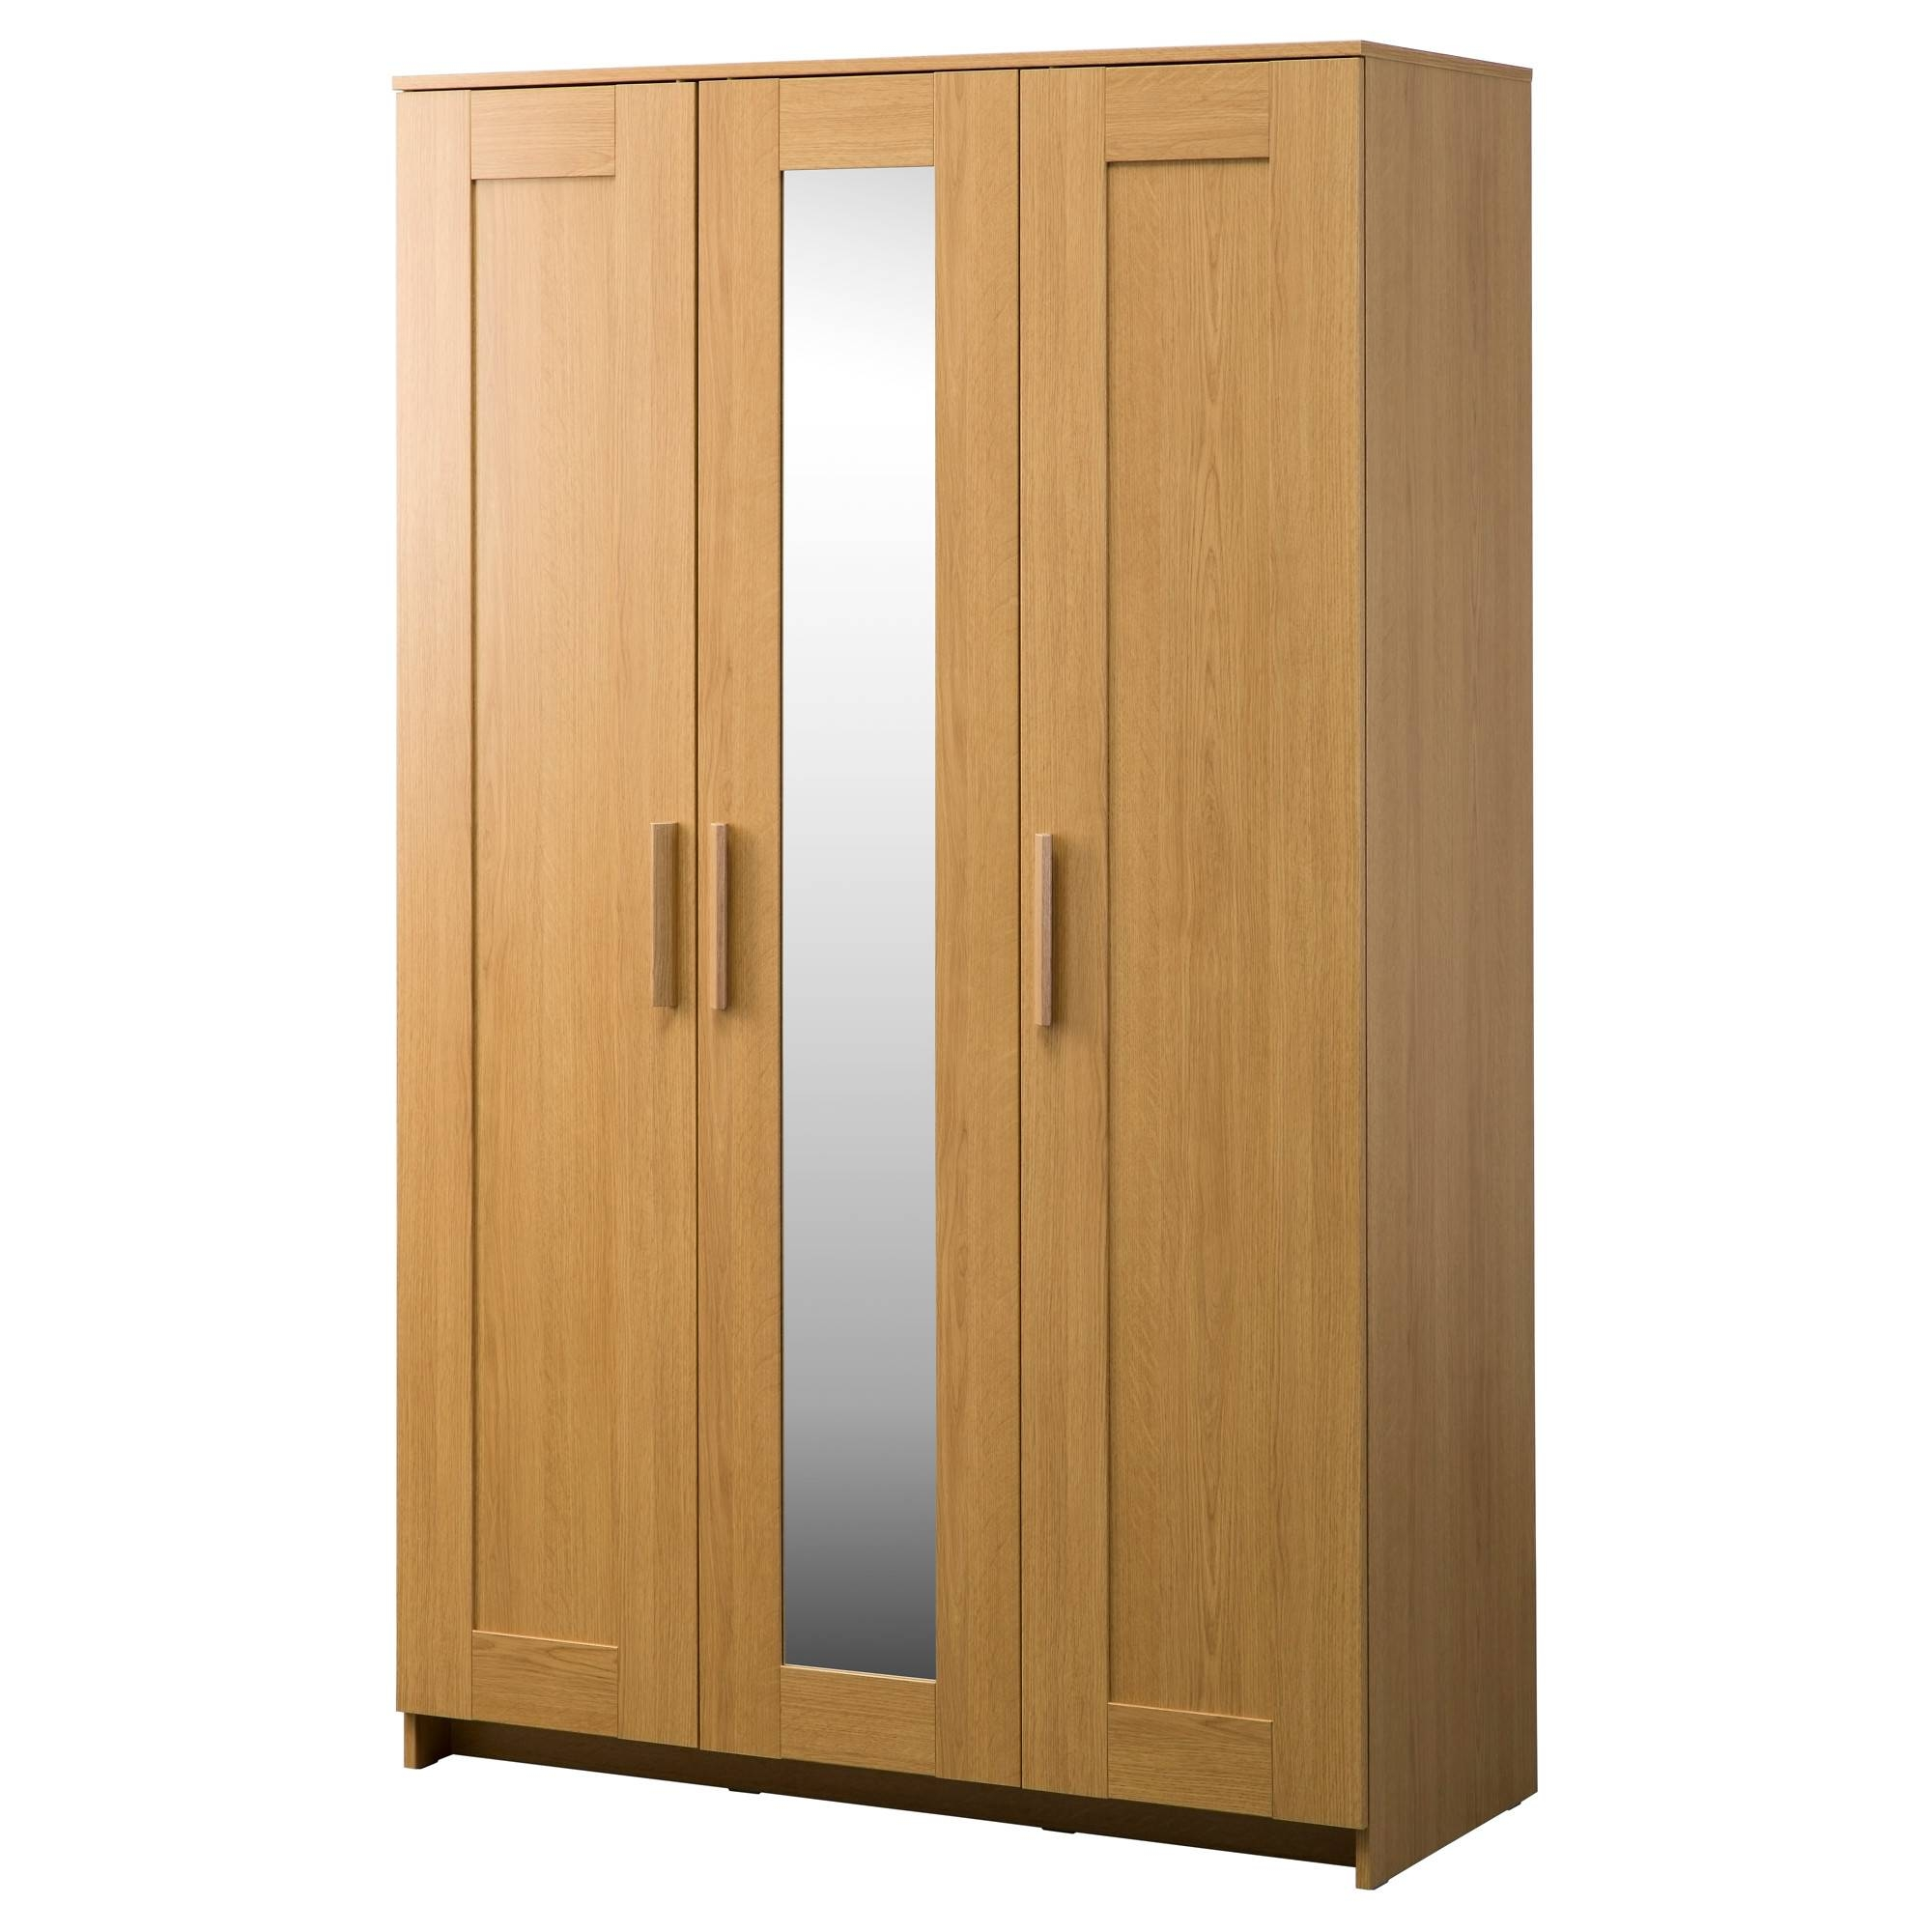 Wardrobes | Ikea throughout Cheap Wardrobes With Drawers (Image 14 of 15)